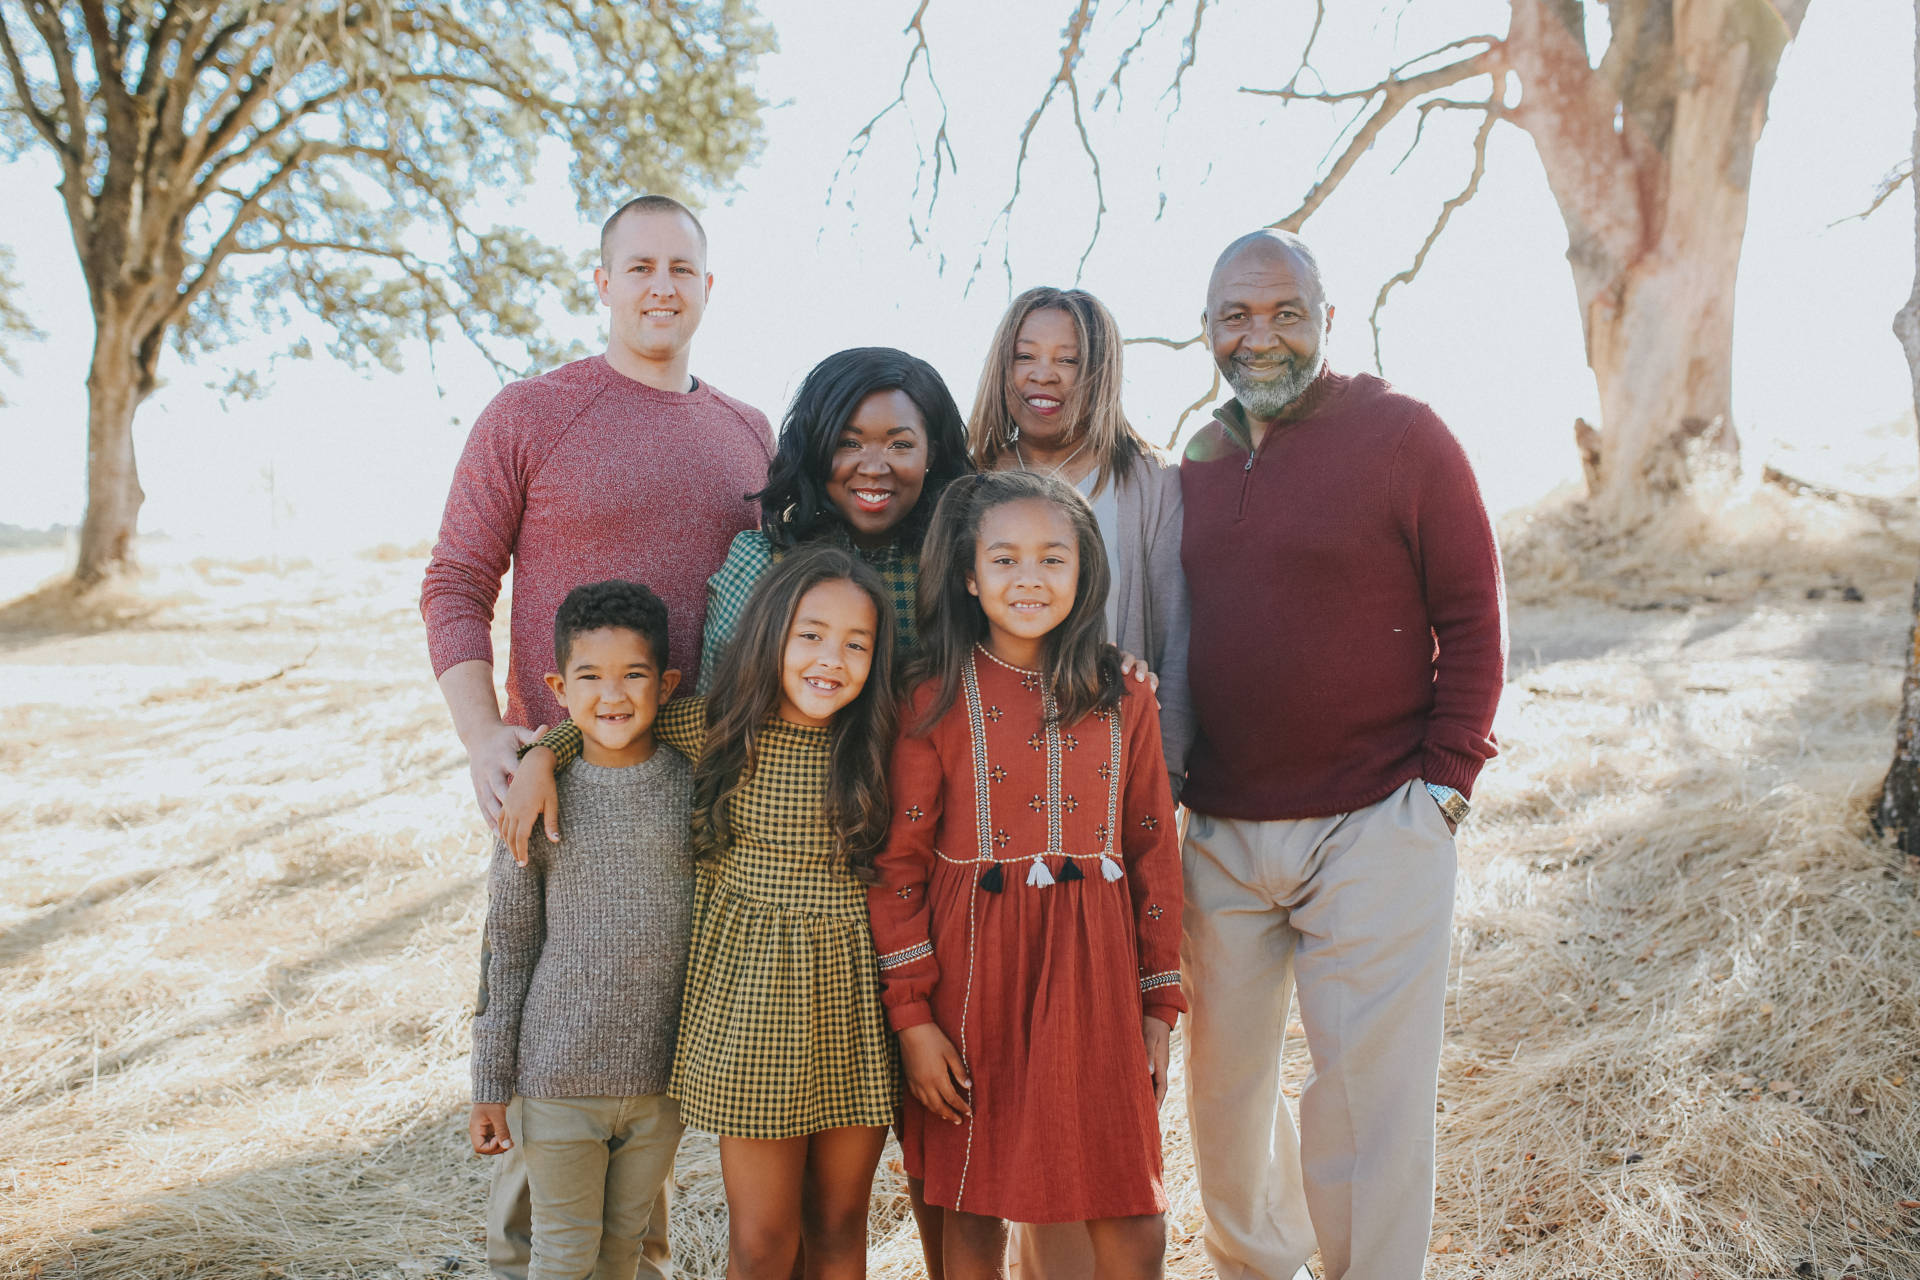 5 Styling Tips For Your Next Family Photo Shoot: Make sure that everyone feels comfortable in what they are wearing. You can also start by getting inspiration online or even looking at what you have in your closet and building the looks from there.